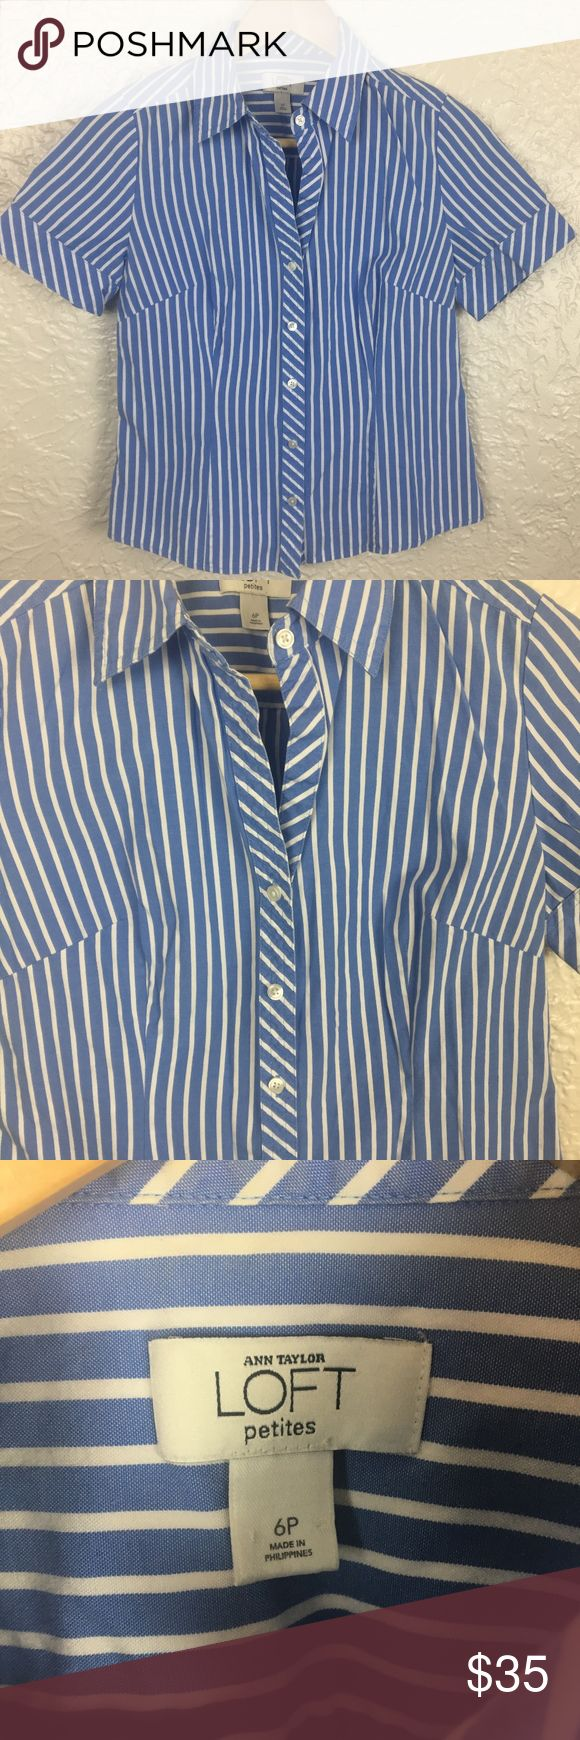 """LOFT Button Down Top 6 P Petite Short Sleeve Shirt ANN TAYLOR LOFT Button Down Top 6 P Petite Short Sleeve Shirt Striped Blue White  BEAUTIFUL TOP!  GREAT FOR WORK WITH BLACK PANTS OR CASUAL FOR THE WEEKEND WITH WHITE JEANS!  SIZE 6 PETITE CHEST  17.5"""" LENGTH  21.5"""" SLEEVE LENGTH  7.5""""  BUNDLE UP! LOFT Tops Button Down Shirts"""